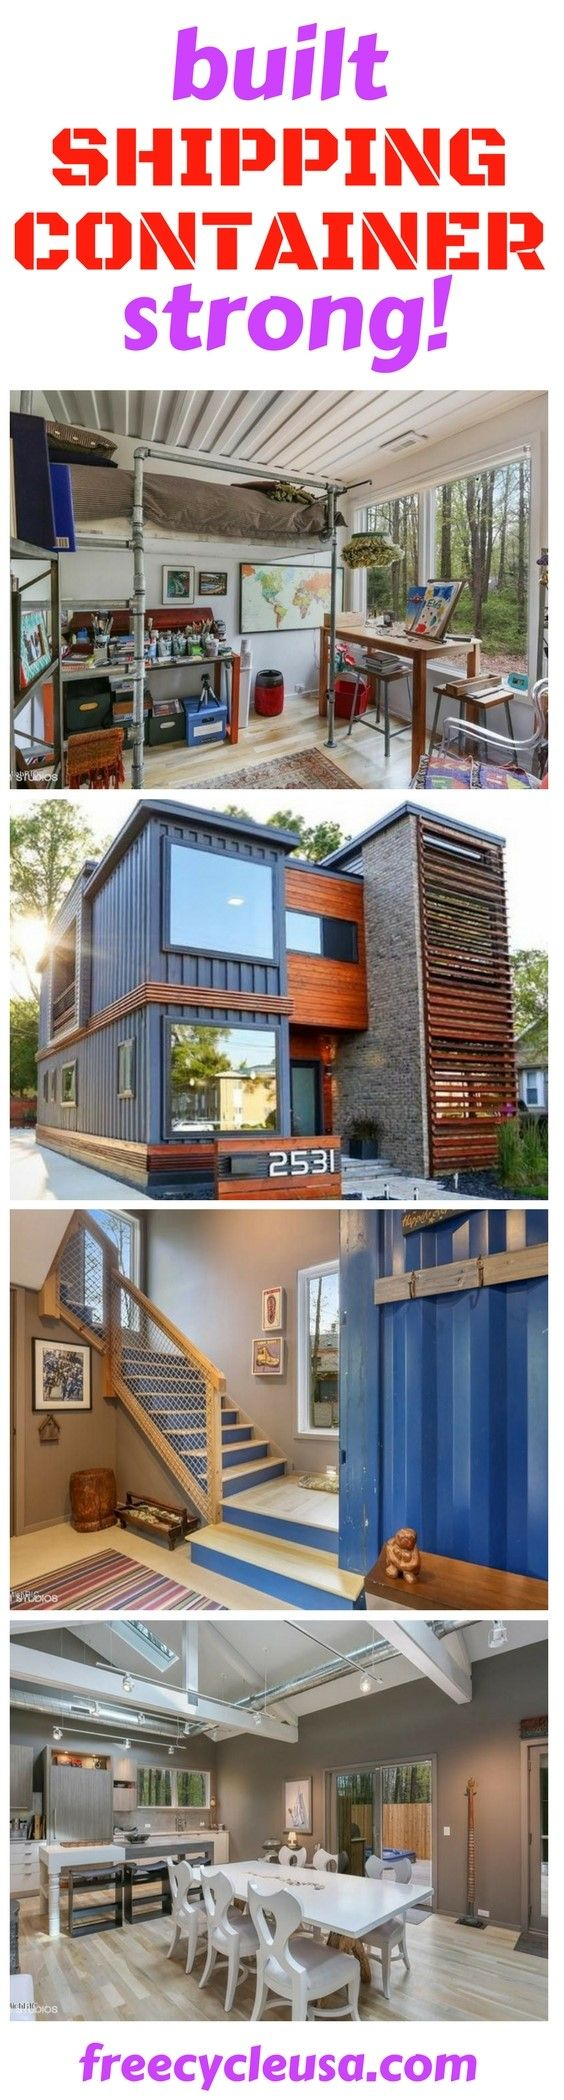 How to Build Amazing Shipping Container Homes | Container häuser ...